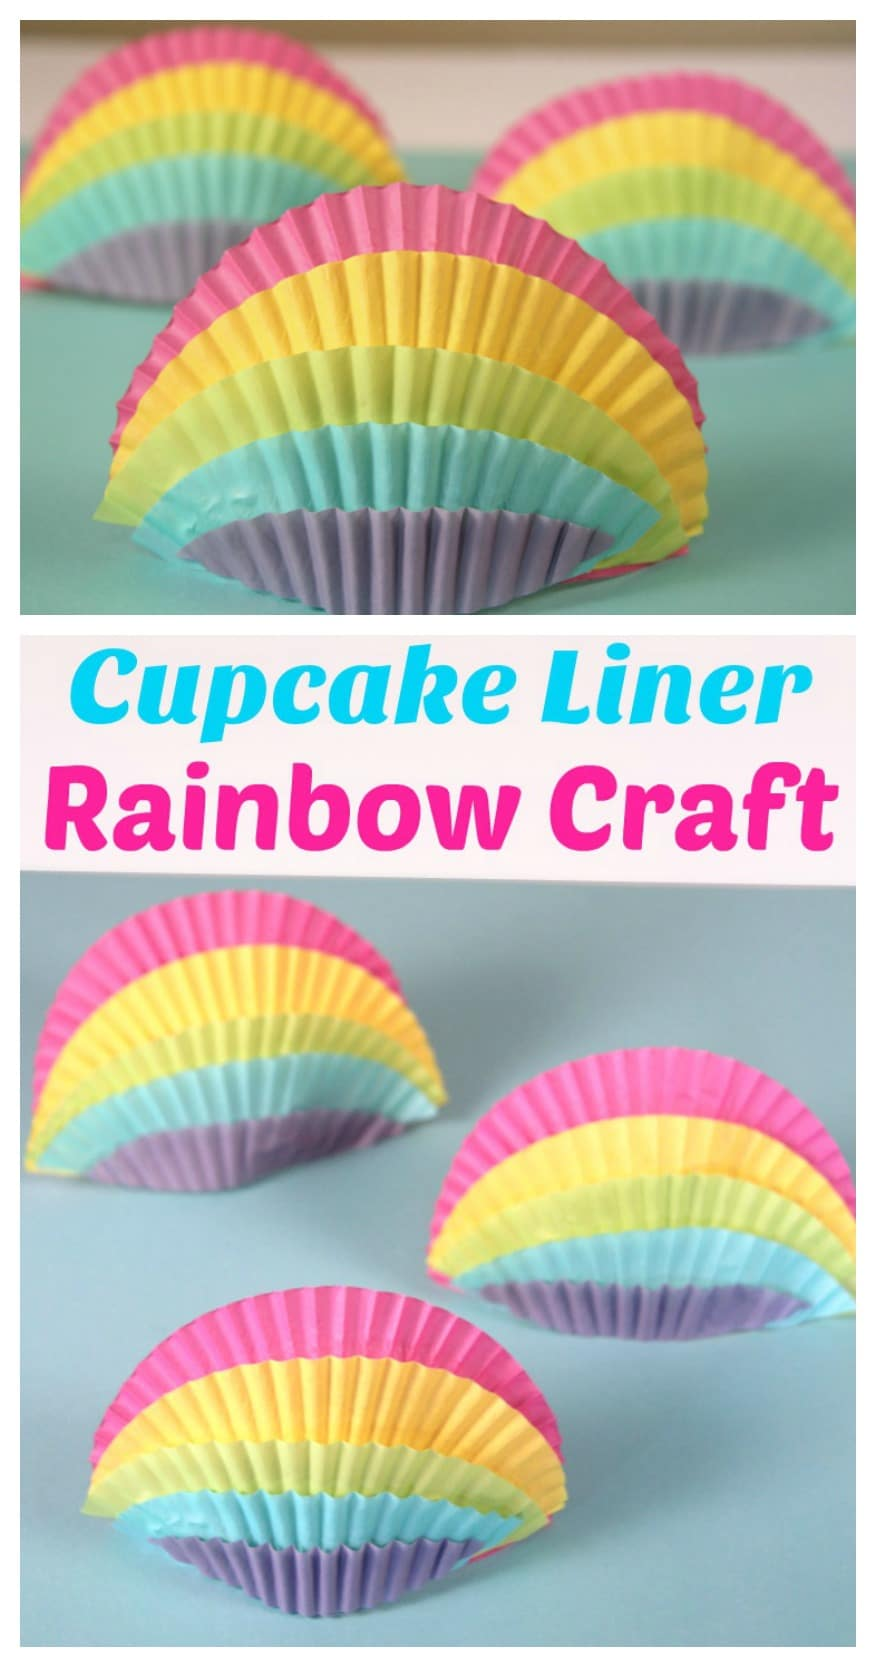 Cute Cupcake Liner Rainbow Craft for Kids.